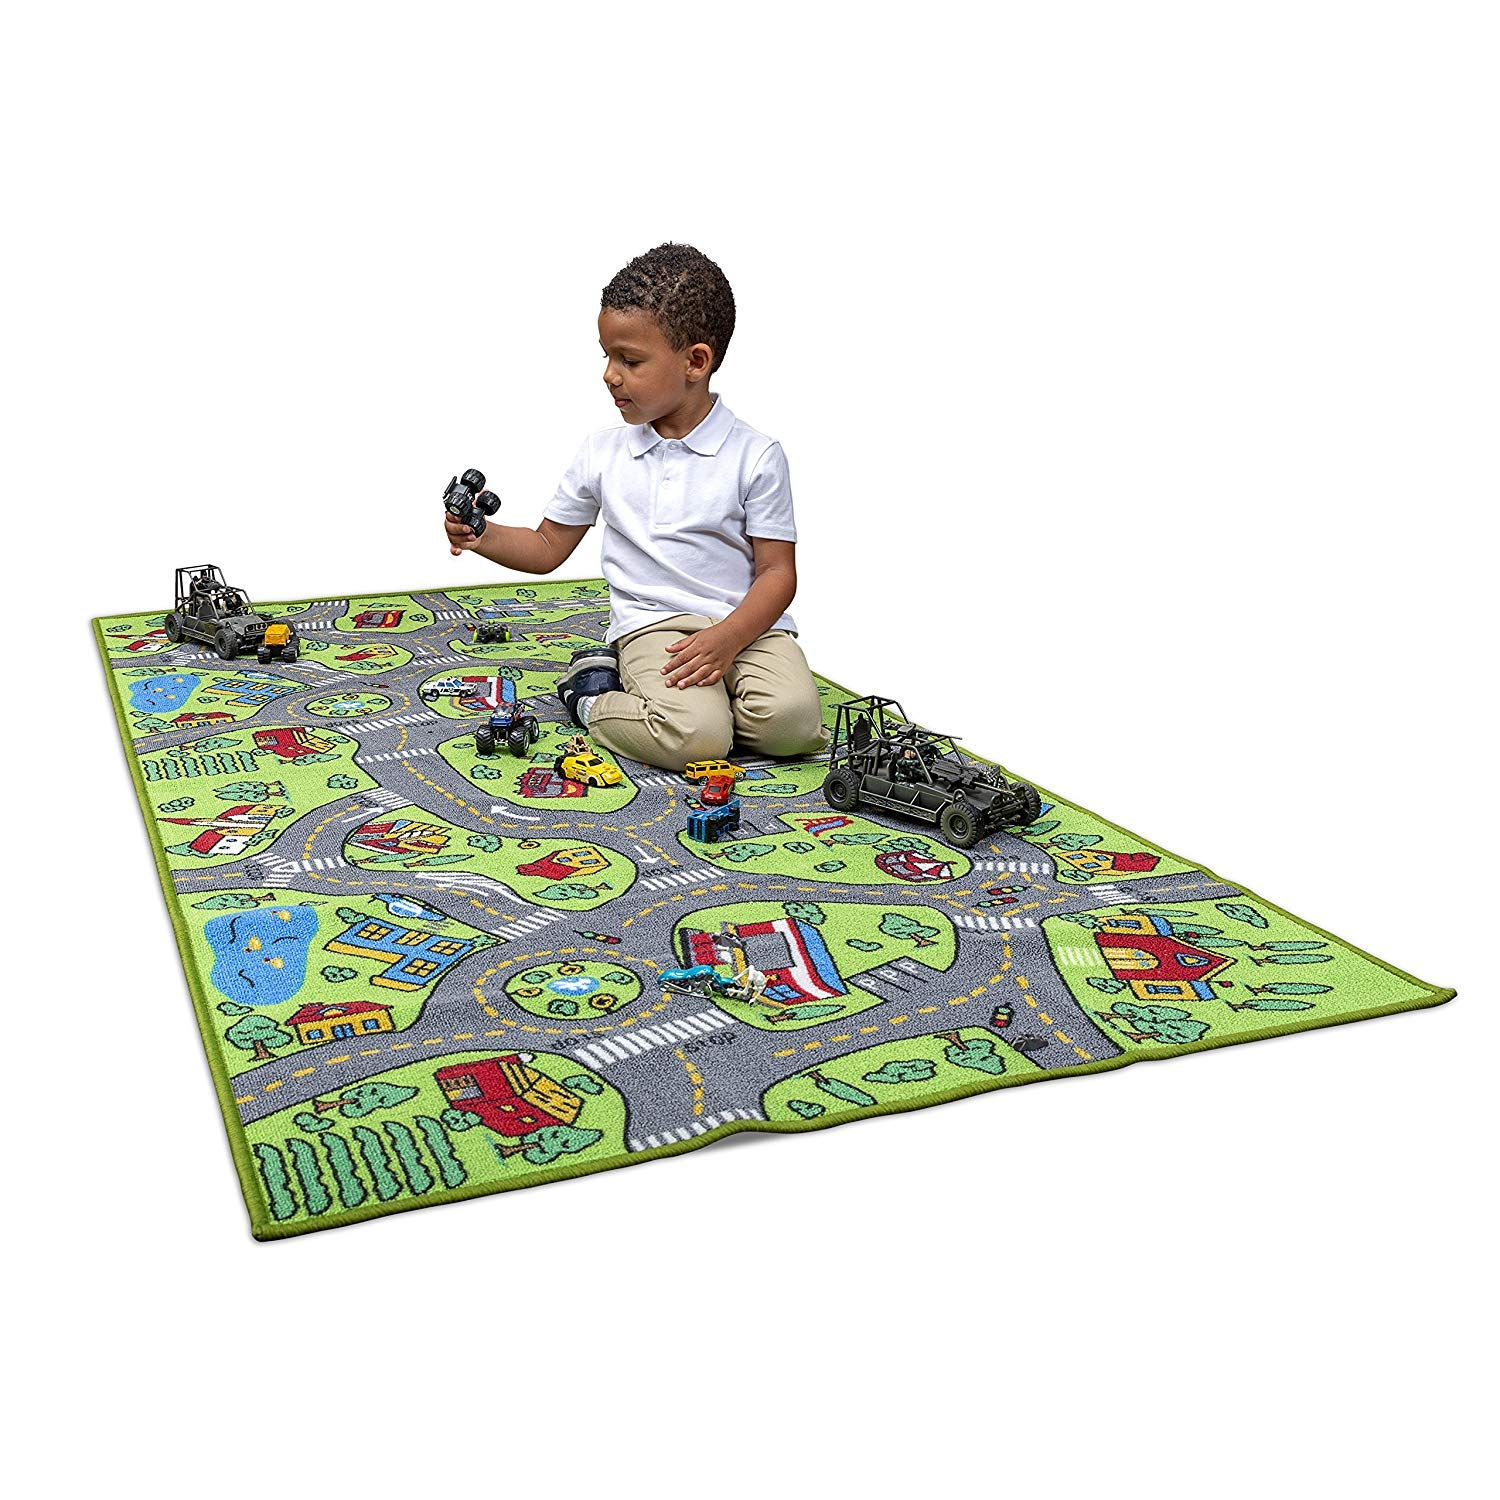 Kids Carpet Playmat City Life Extra Large Learn Have Fun Safe, Children's Educational, Road Traffic System, Multi Color…